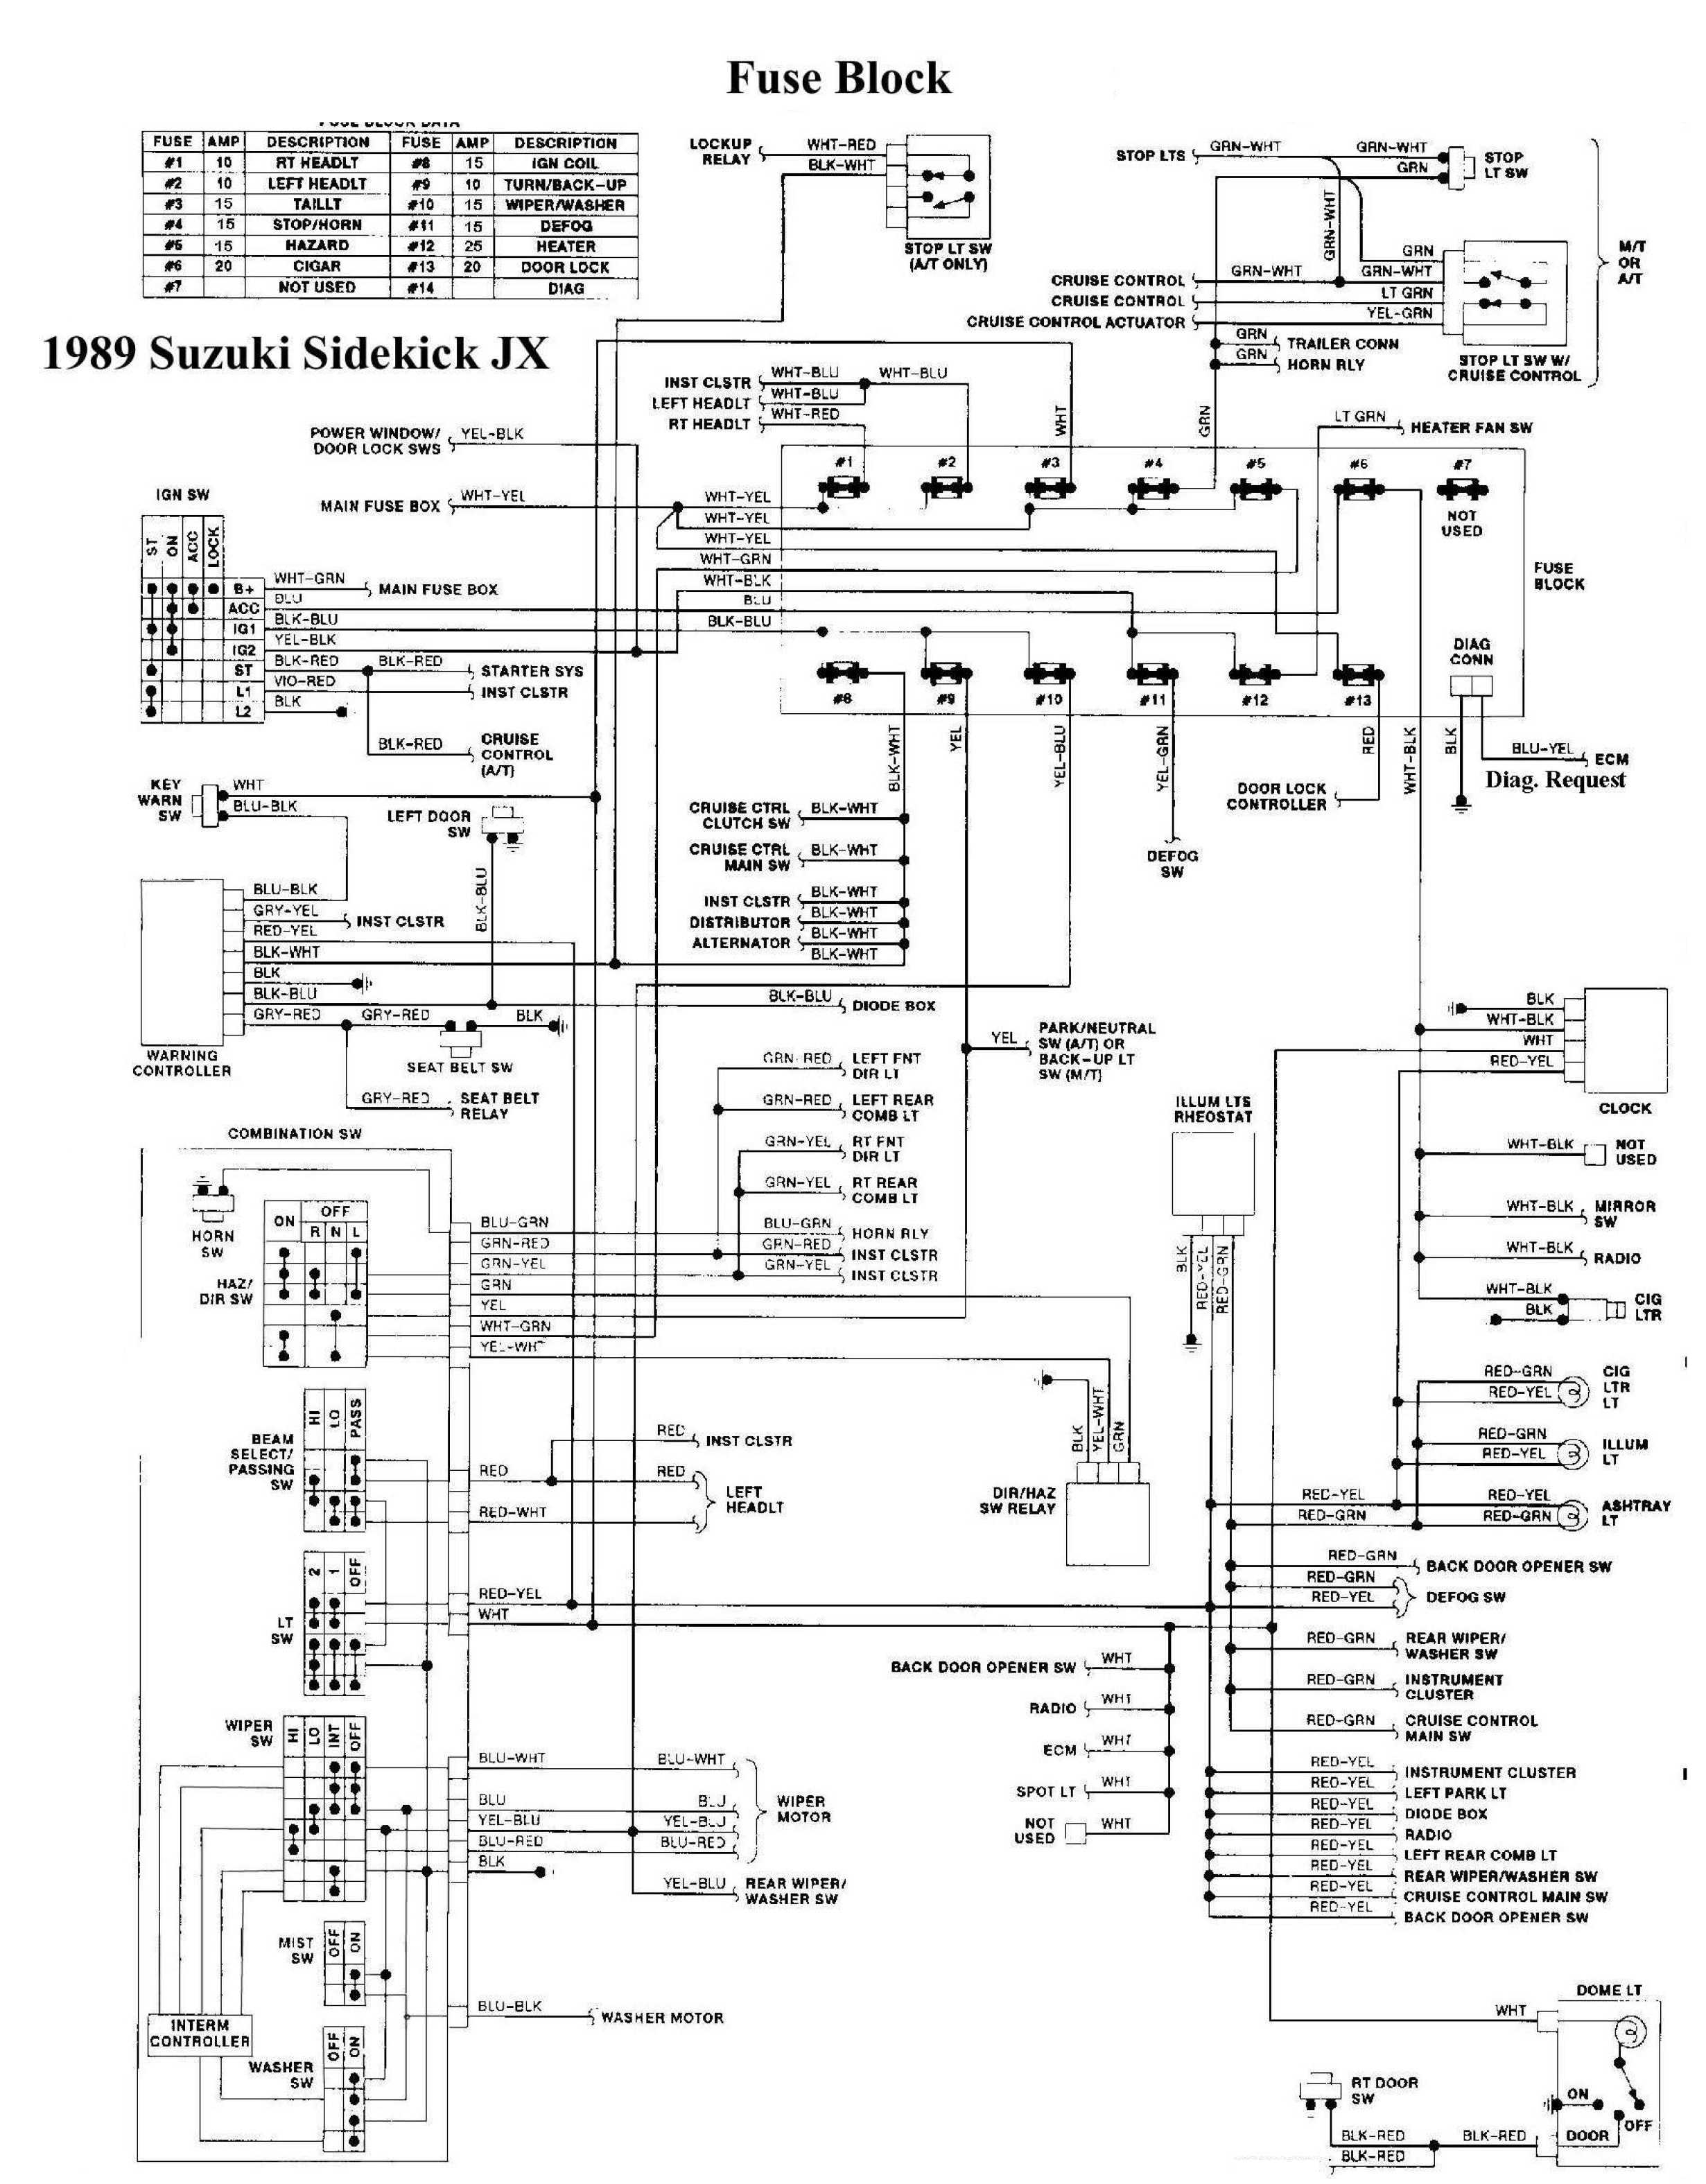 1996 geo tracker radio wiring diagram geo tracker headlight wiring diagram headlight switch problem! - suzuki forums: suzuki forum site